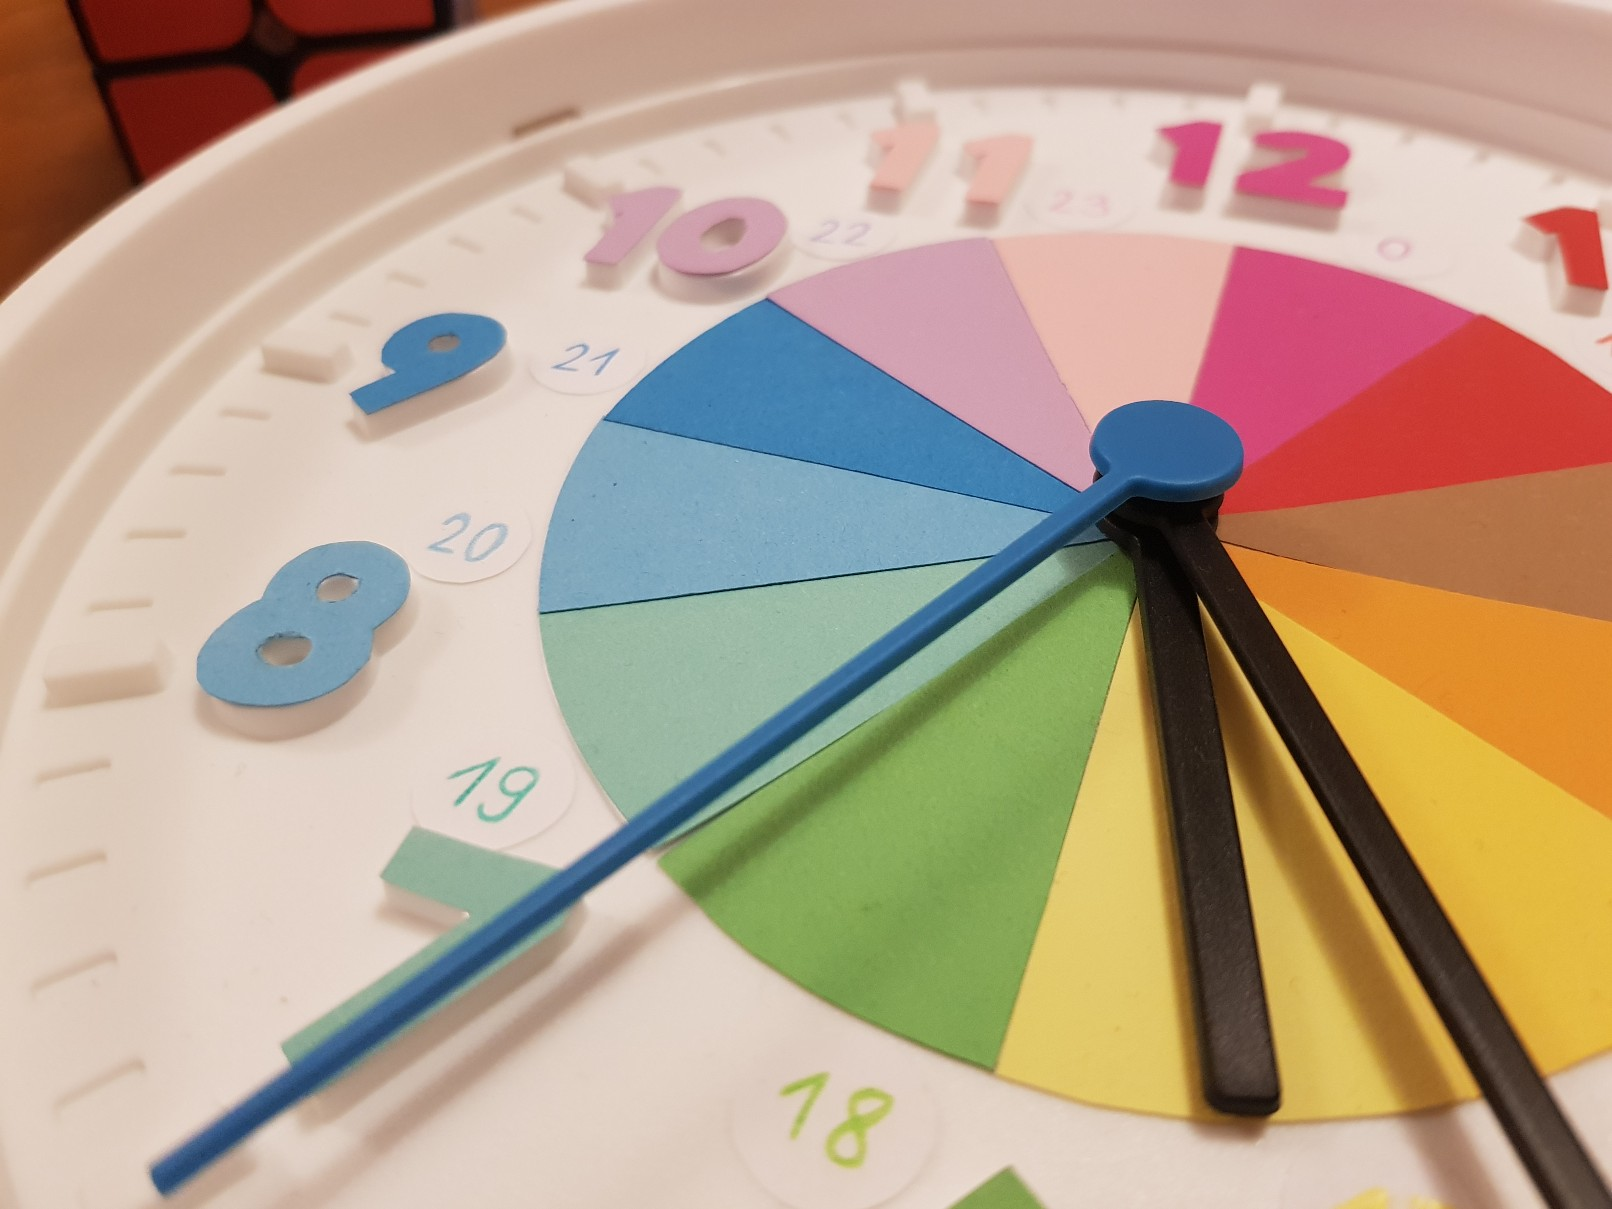 clock learning time telling hours 24 hours ready